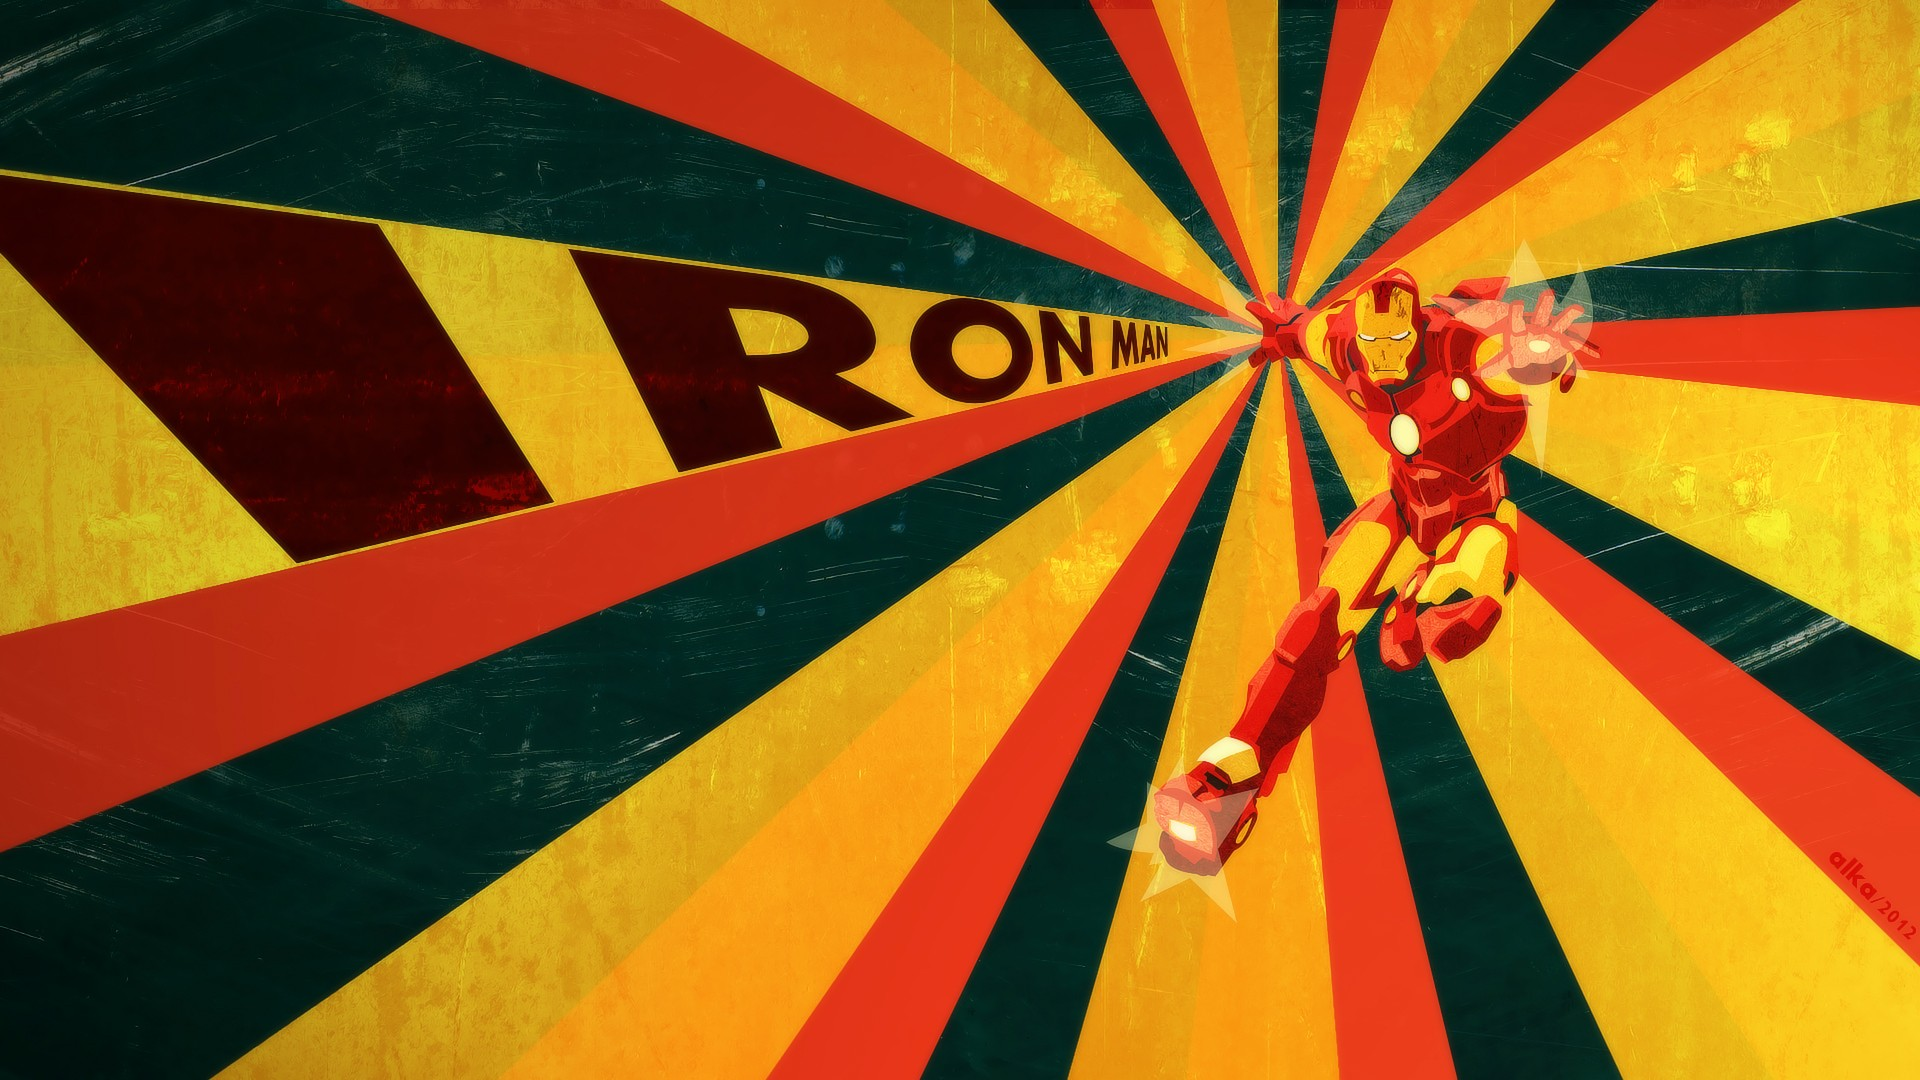 retro wallpaper iron man HD Desktop Wallpapers 4k HD